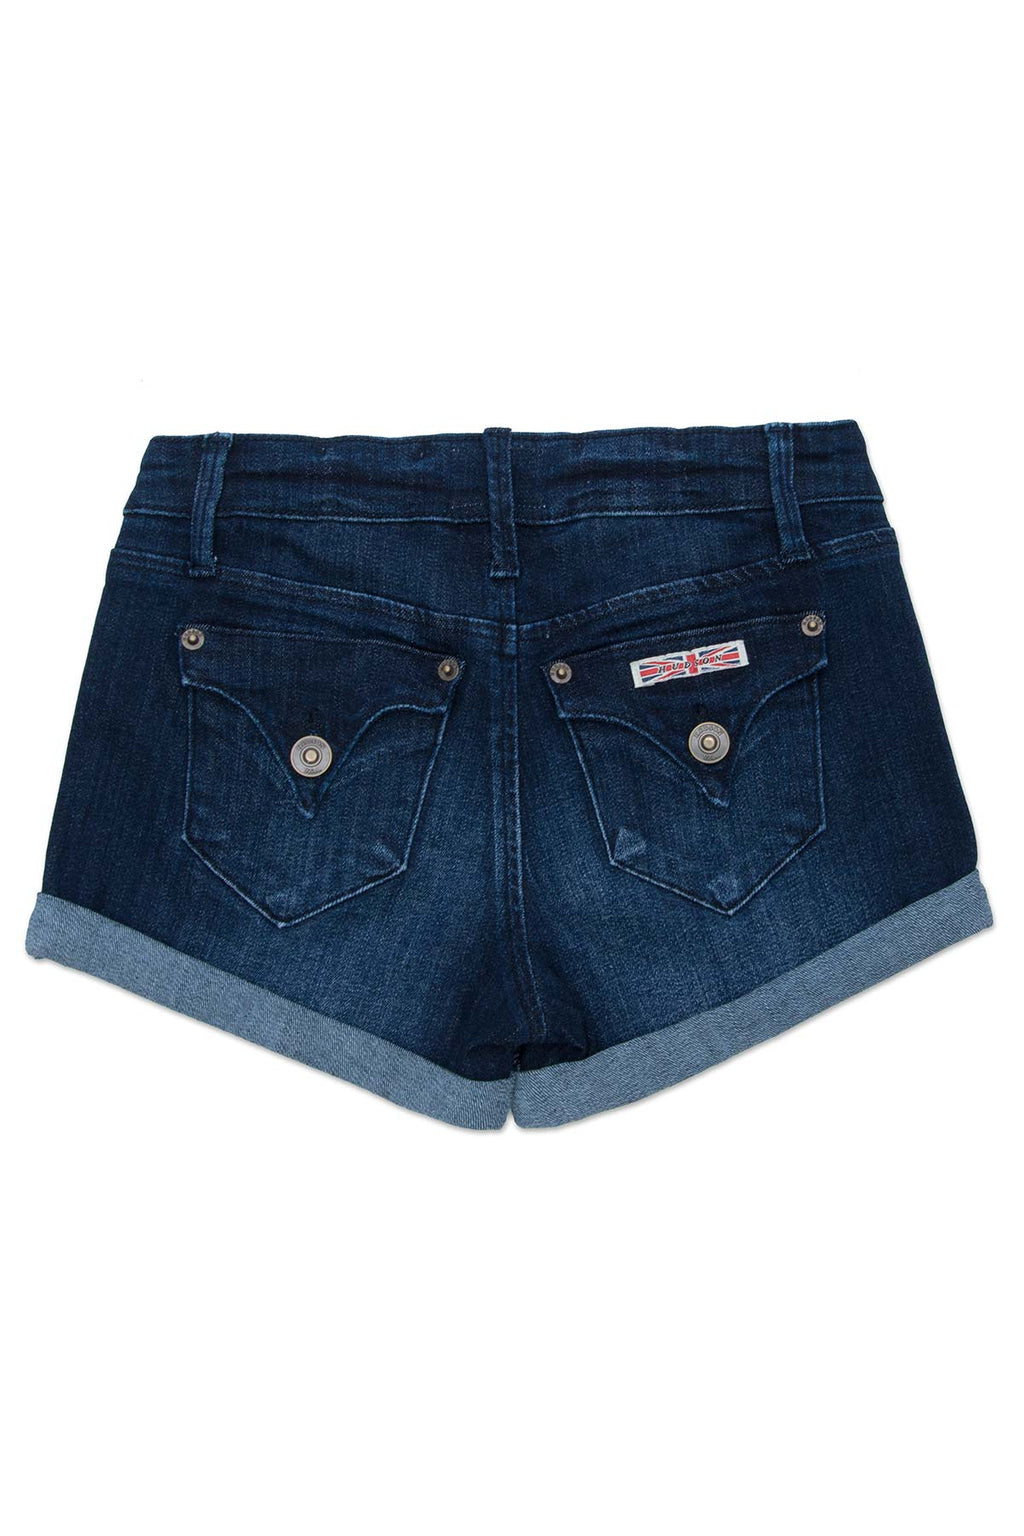 Big Girls Collin Short, Sizes 7-16 - hudsonjeans